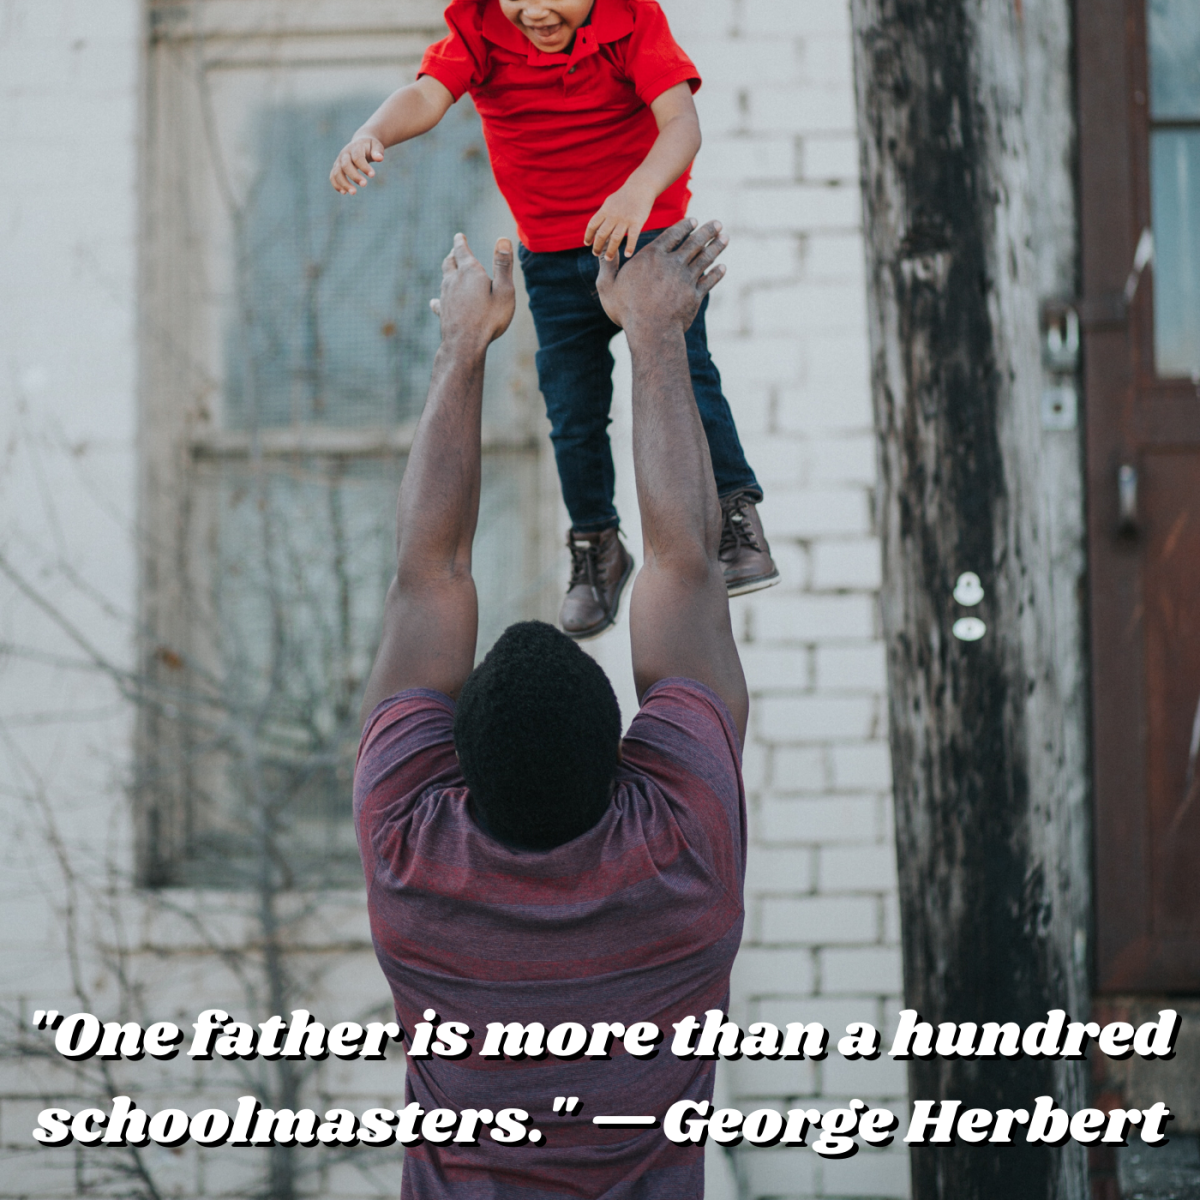 """One father is more than a hundred schoolmasters."" —George Herbert"